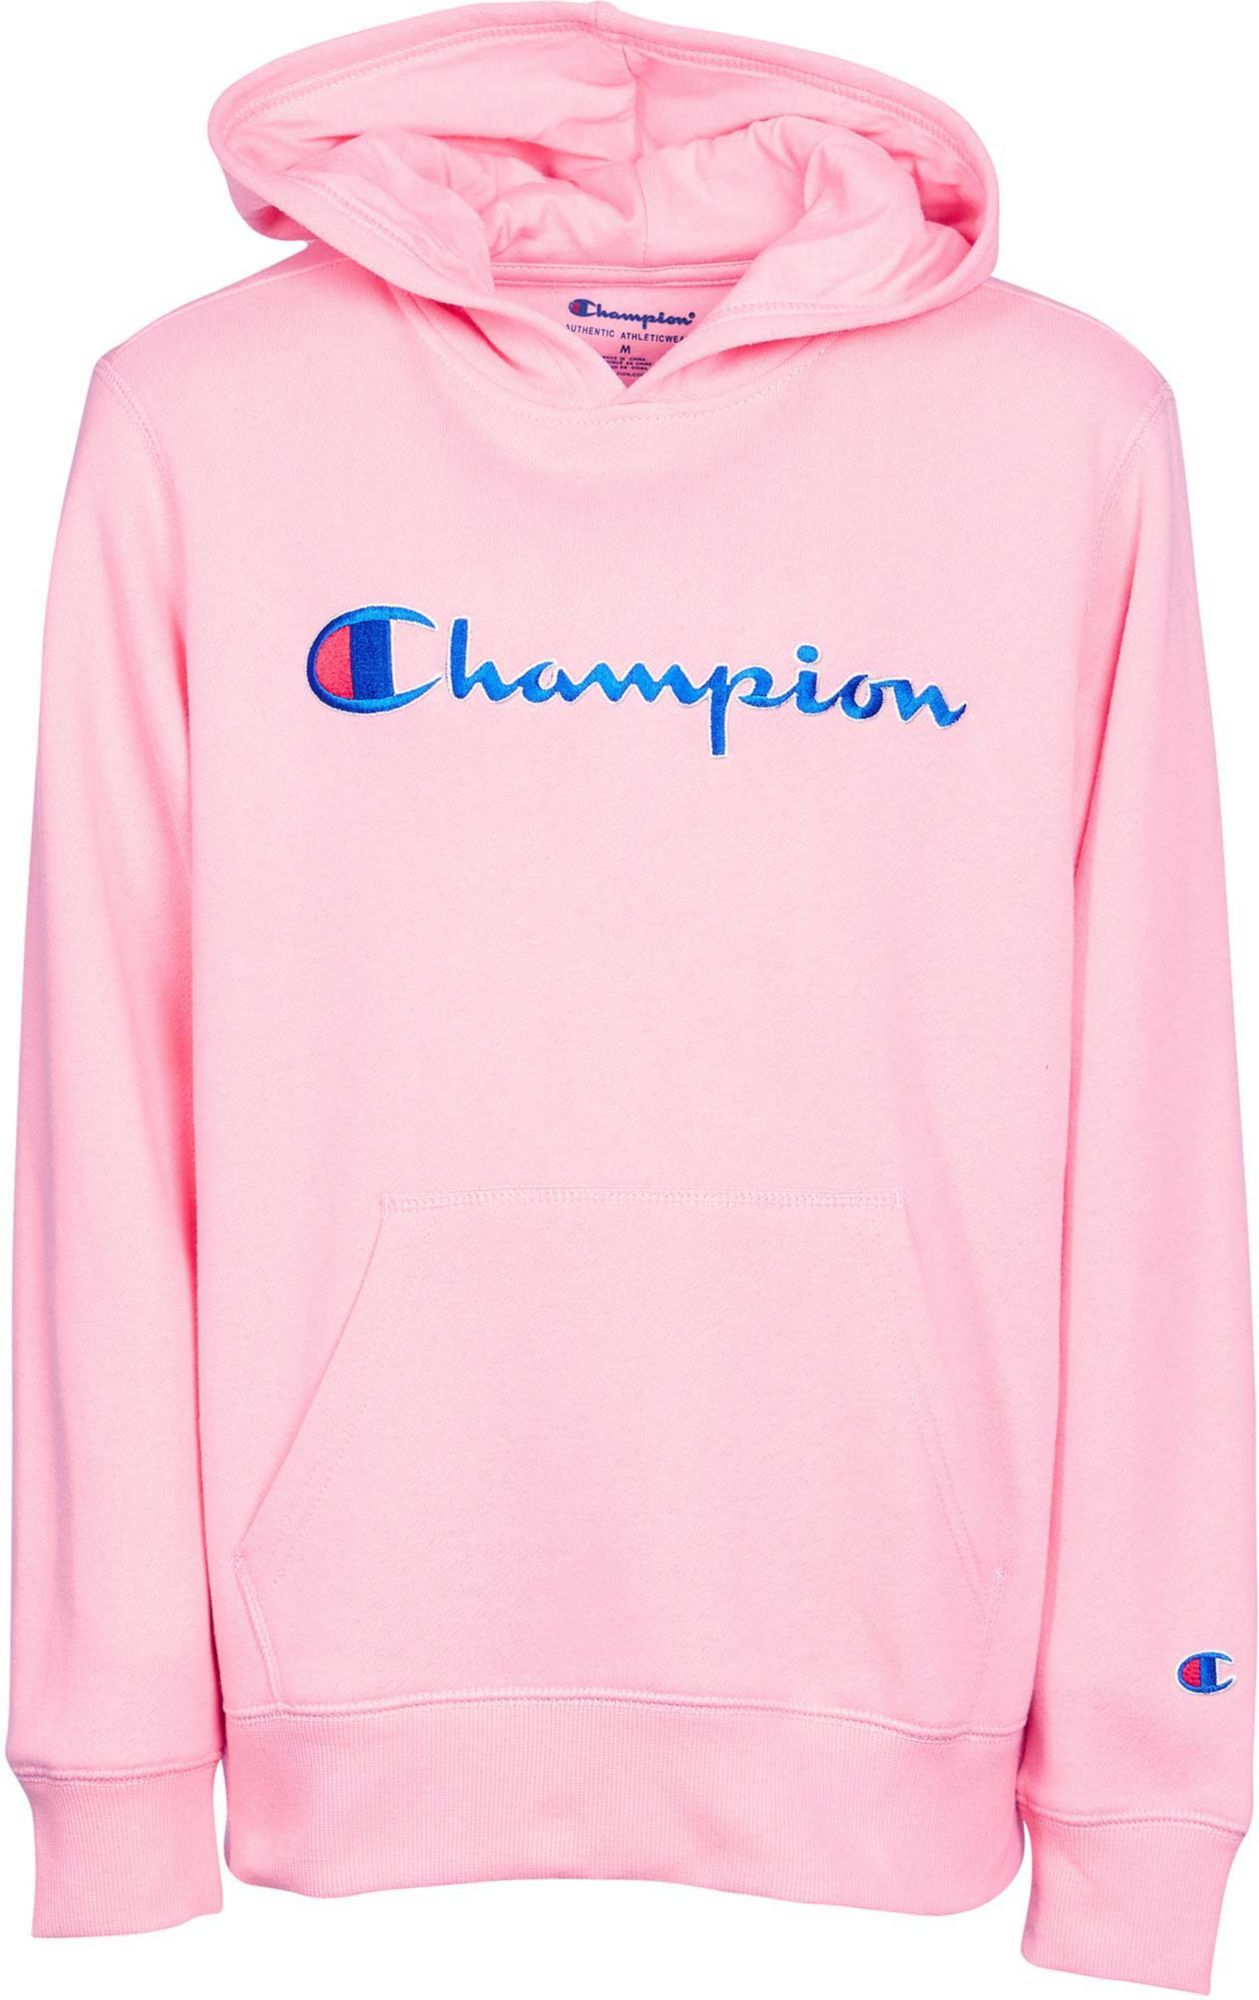 1707719e643 Champion Girls' Script Hoodie in 2019 | Products | Champion hooded ...